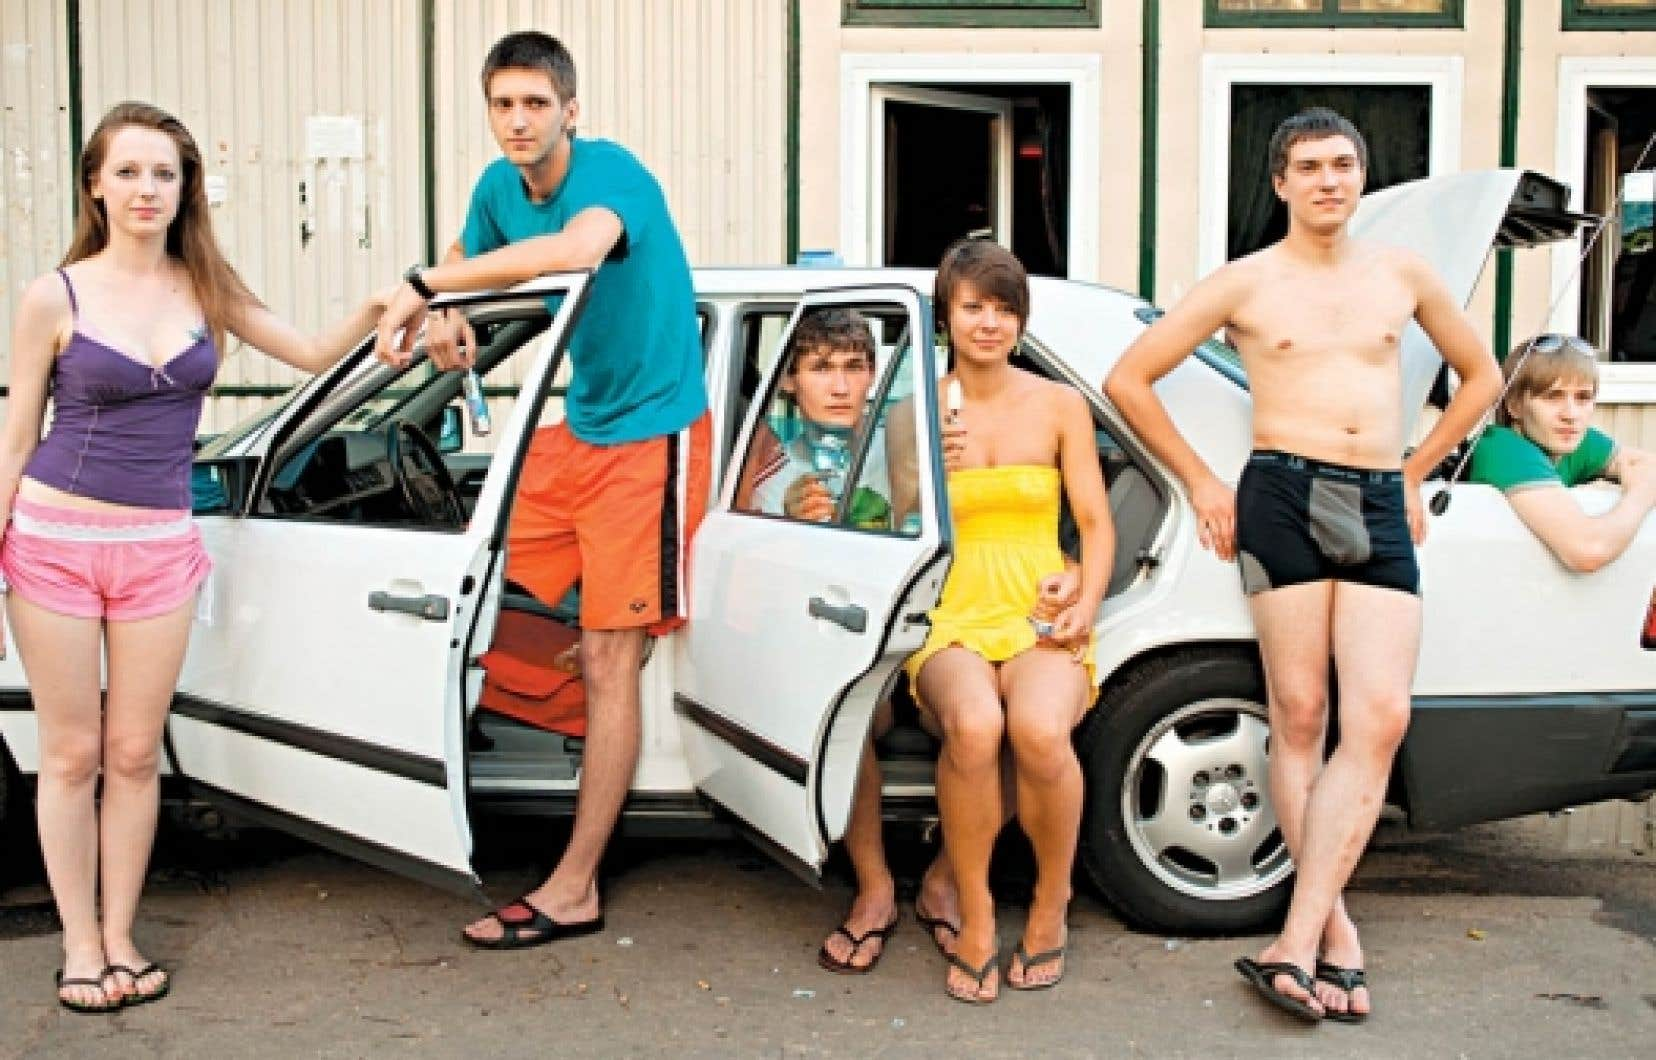 Six Russians Eating Ice Cream, 2010, d&rsquo;Adad Hannah<br />